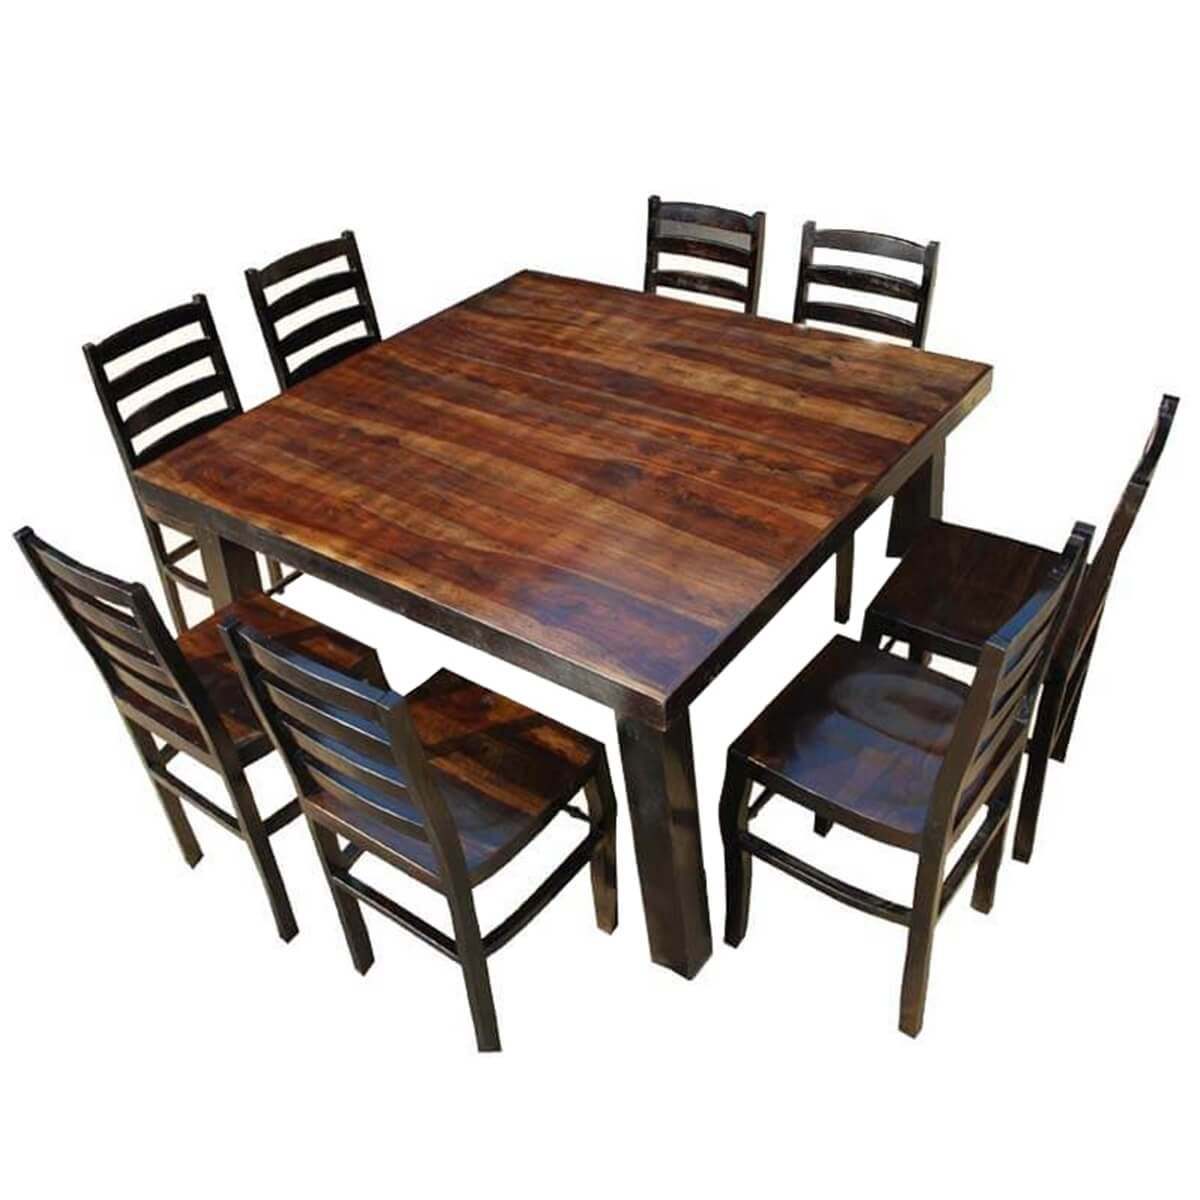 Rustic Counter Height Kansas City Square Dining Set For 8 People Square Kitchen Tables Square Dining Tables Square Dining Room Table